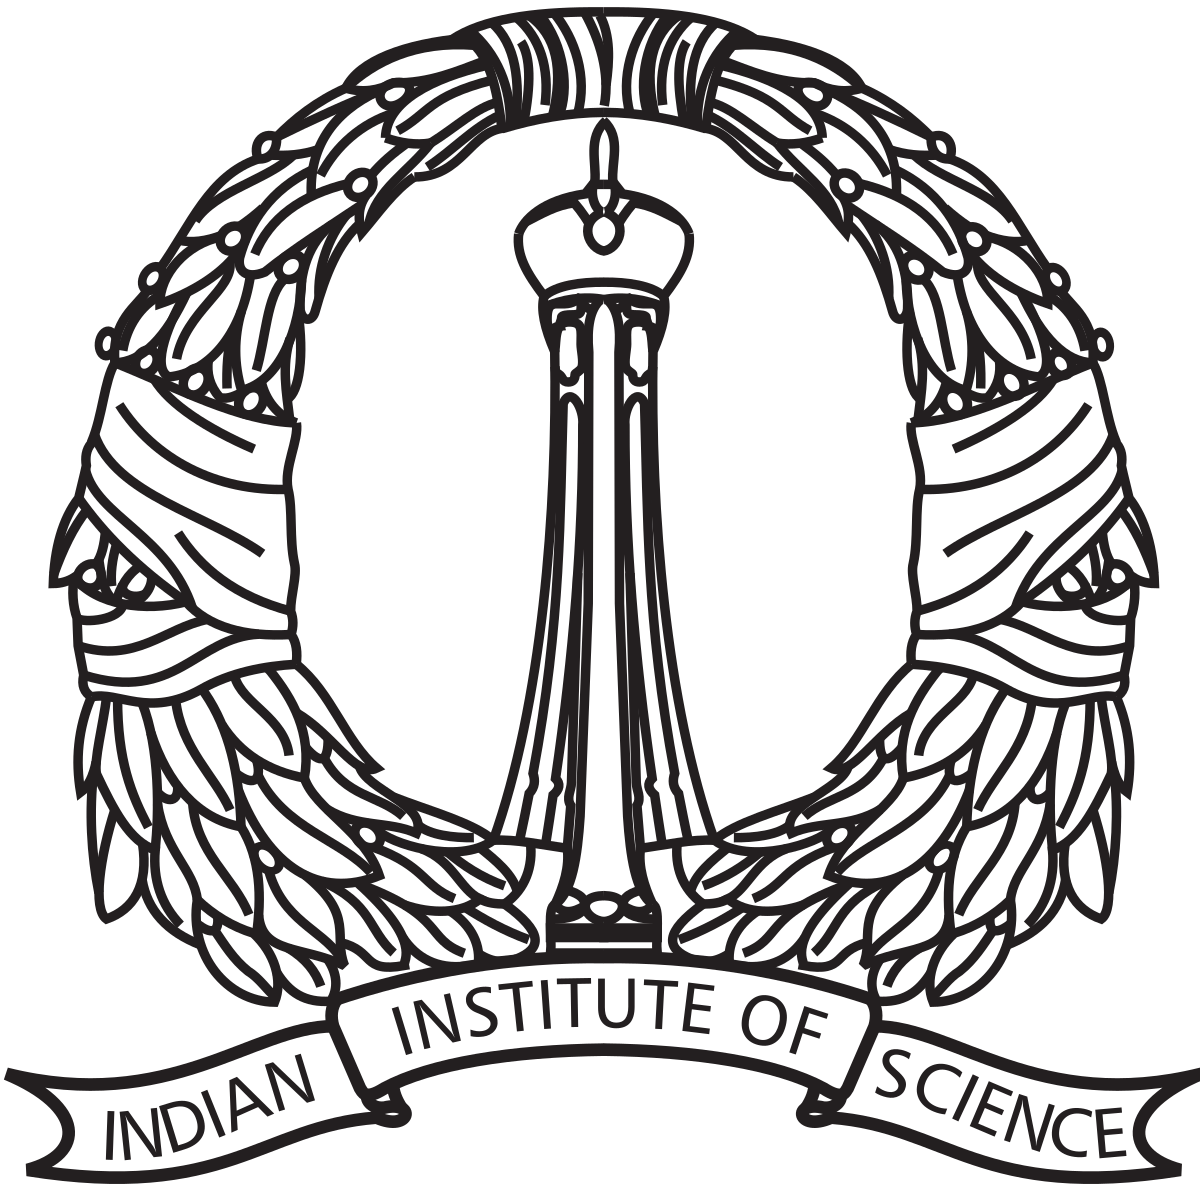 Indian Institute of Science  Bengaluru Admission Open 2017-18 Apply to UG Program And PG Program